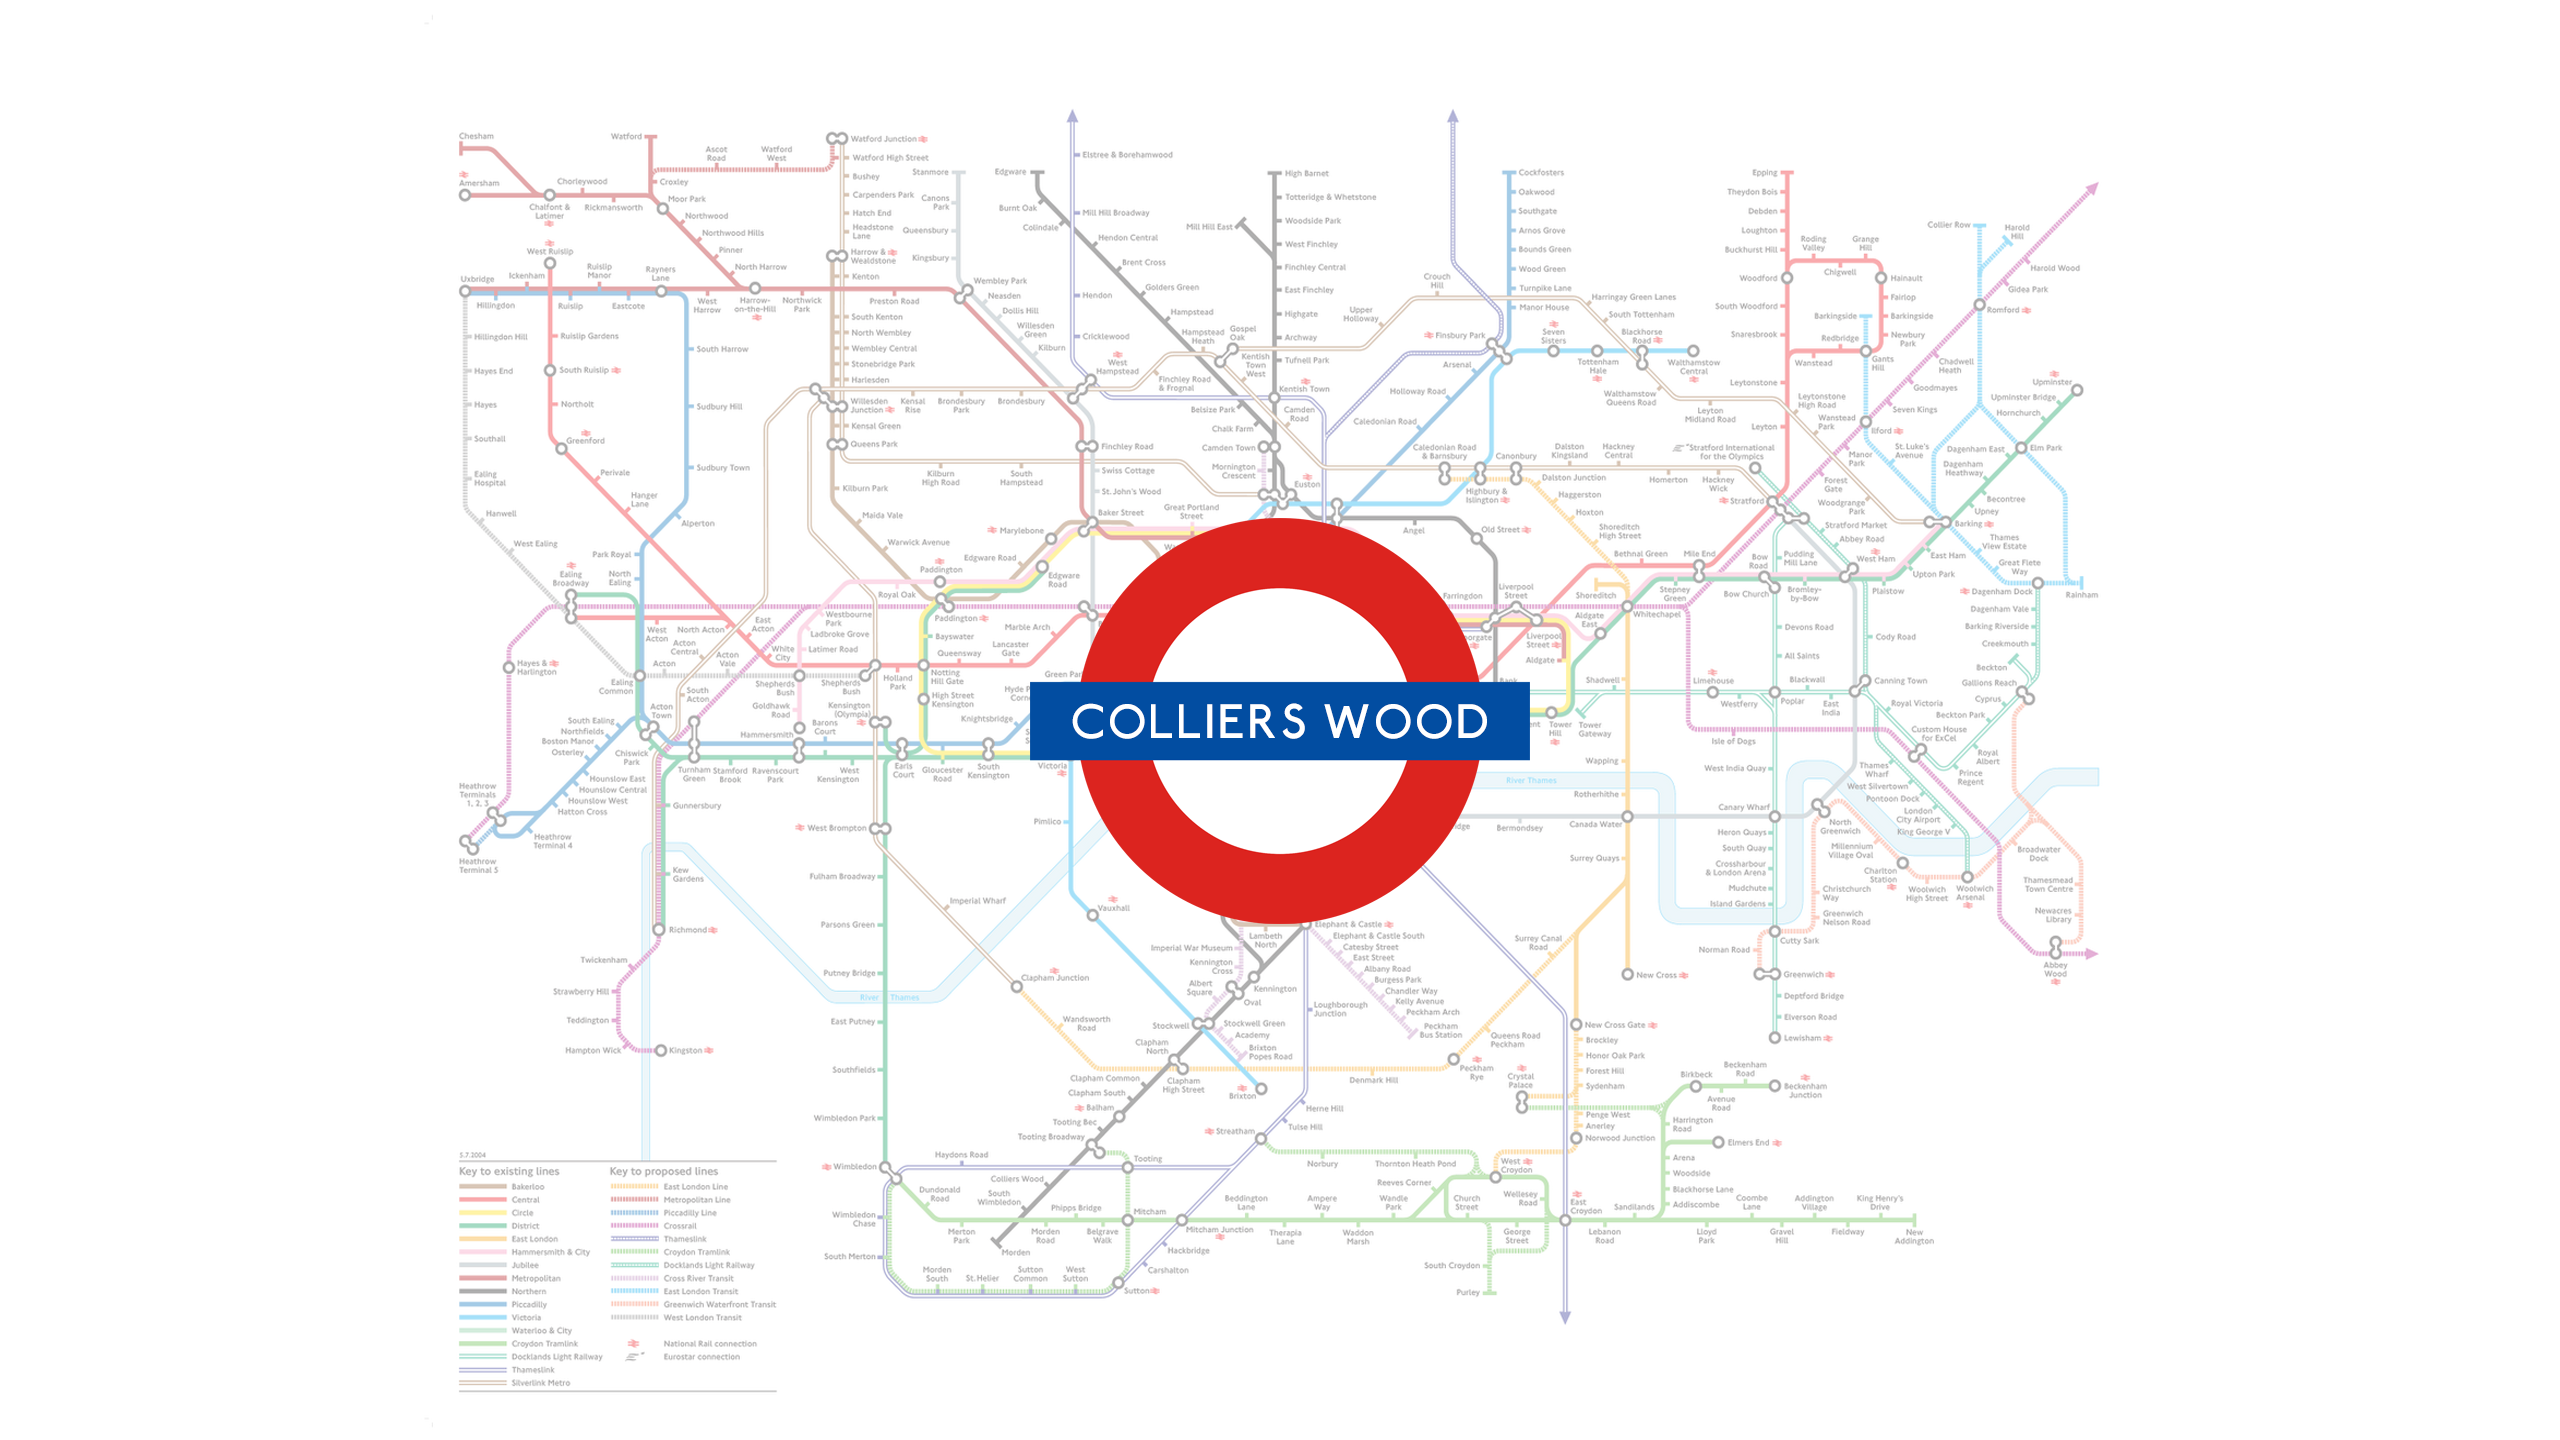 Colliers Wood (Map)